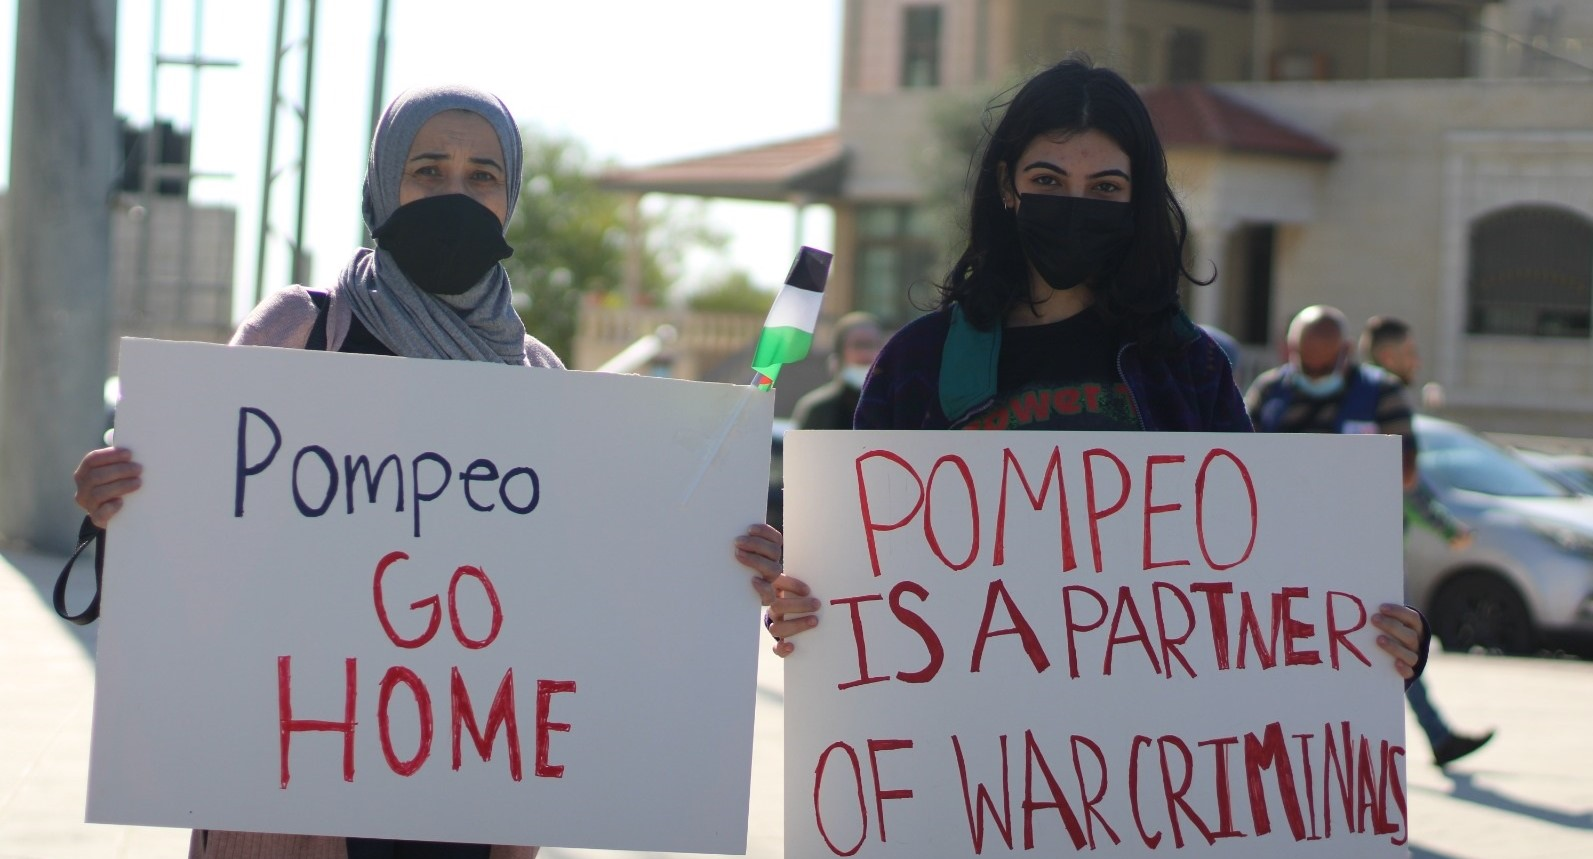 Palestinians protested in Al-Bireh on Wednesday, November 18, against US Secretary of State Mike Pompeo's imminent visit to the illegal Psagot settlement and winery. Residents of Al-Bireh have seen their land taken over by Psagot and other Israeli outposts in the area, including acreage belonging to a number of landowners who hold US citizenship. Pompeo is the first high-ranking US official to have visited an Israeli settlement in the heart of the West Bank.